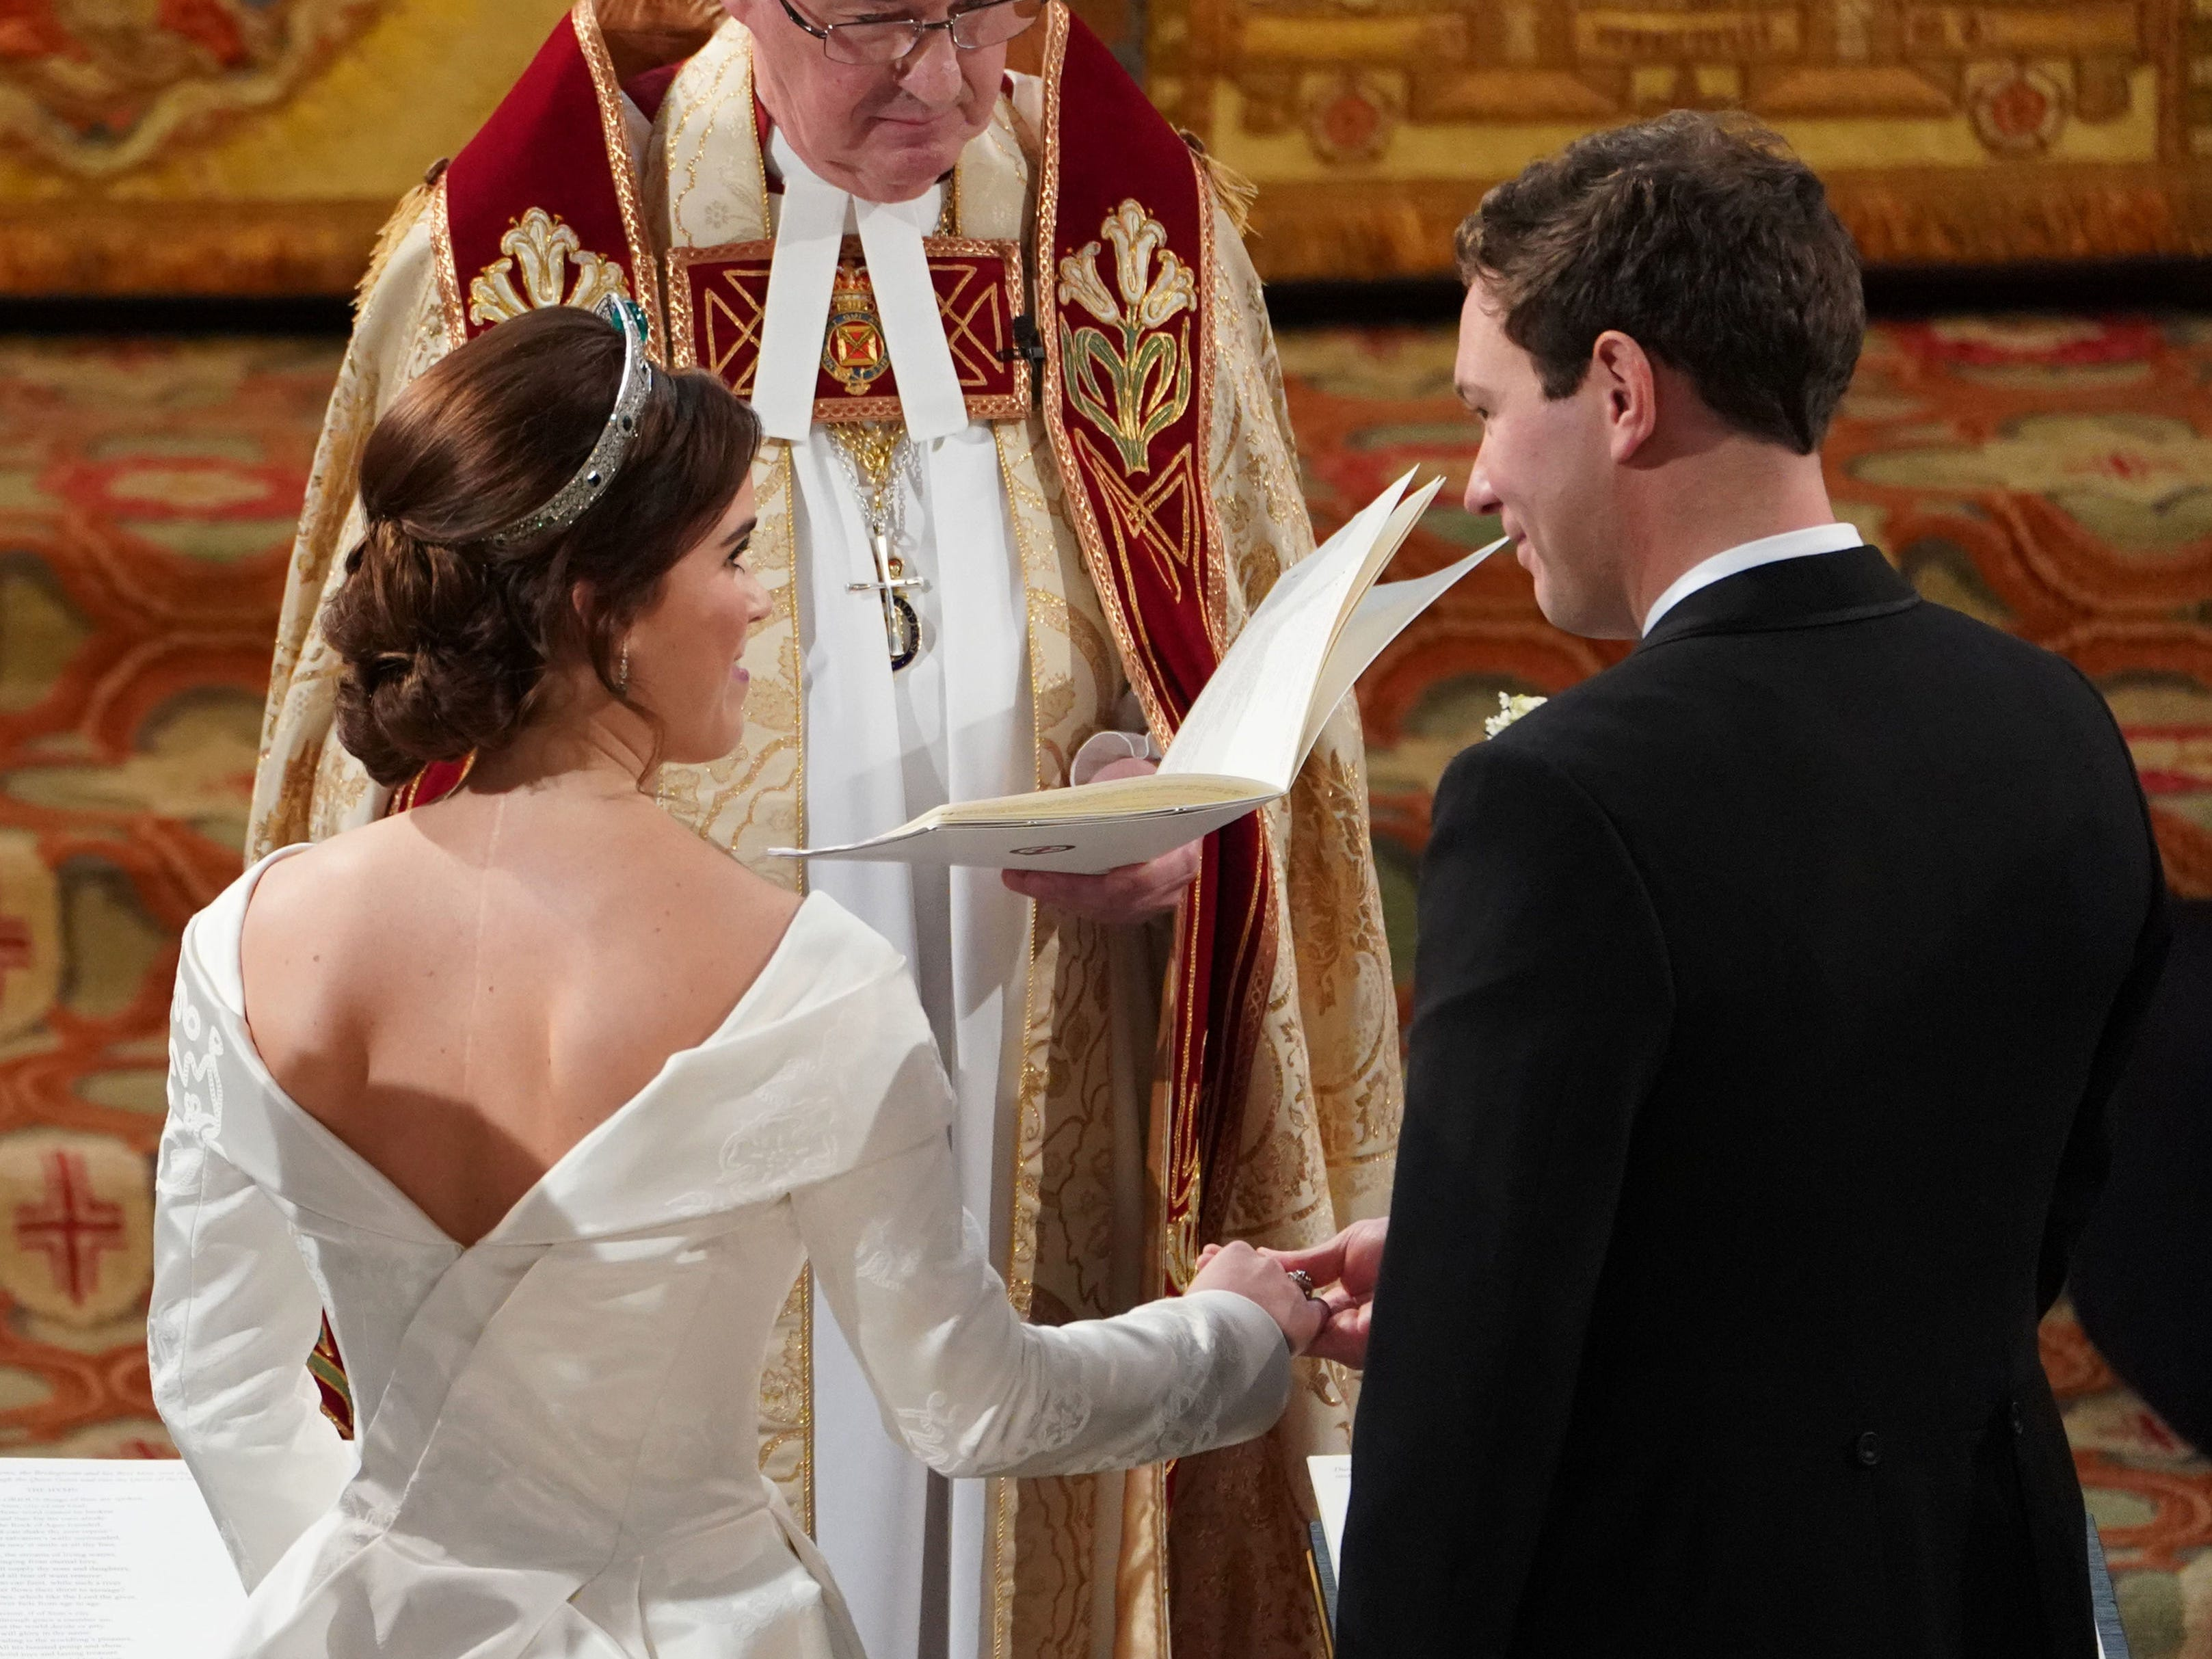 WINDSOR, ENGLAND - OCTOBER 12: Jack Brooksbank and Princess Eugenie of York during their wedding ceremony at St. George's Chapel on October 12, 2018 in Windsor, England. (Photo by Owen Humphreys - WPA Pool/Getty Images) ORG XMIT: 775239781 ORIG FILE ID: 1051954332